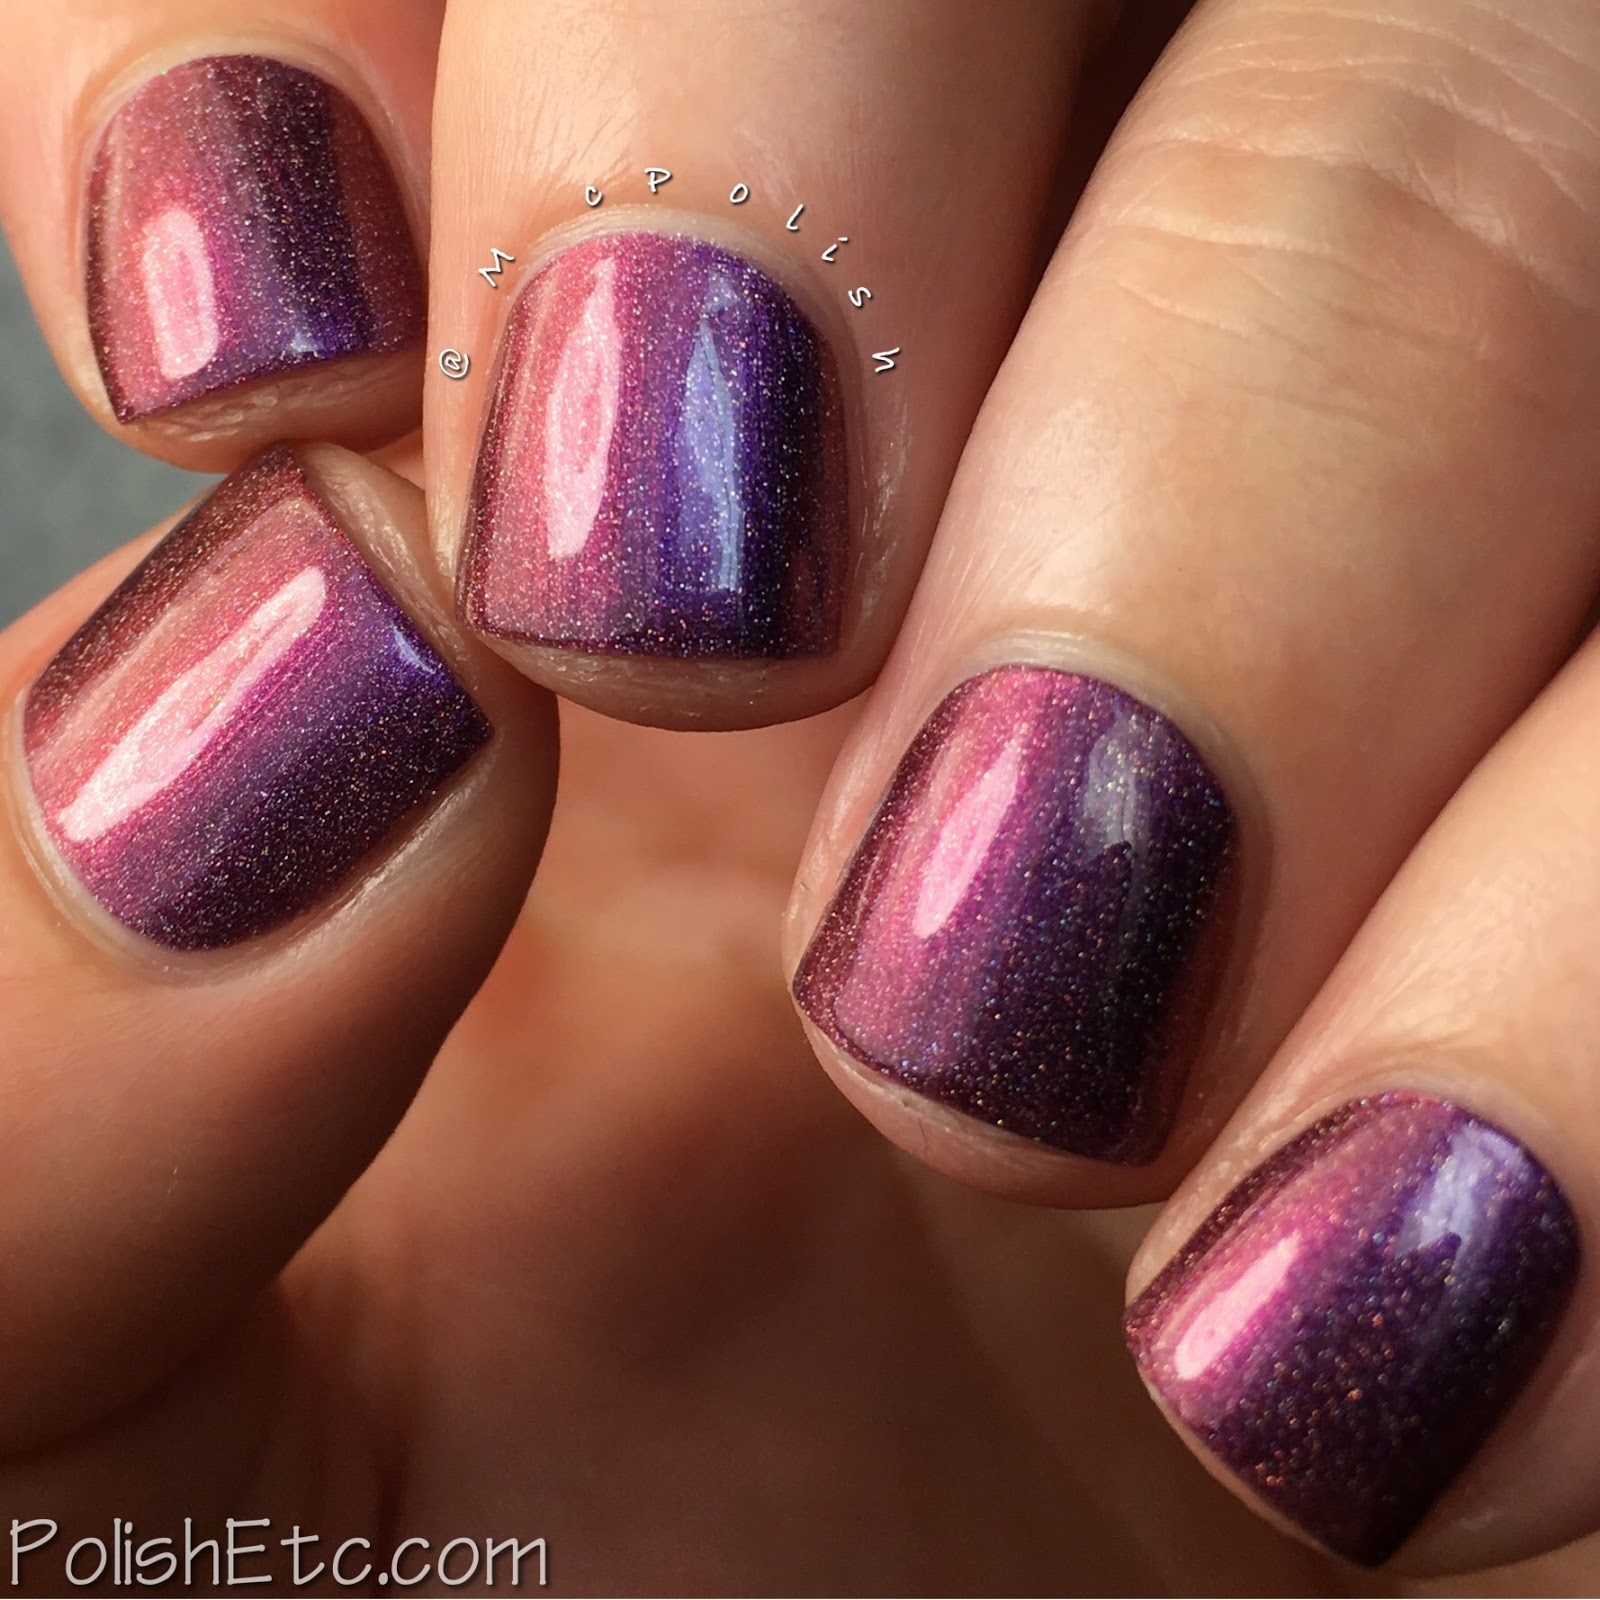 Top Shelf Lacquer - Cocktail Fun Holo'd Collection - McPolish - Help Me Straighten Mai Tai (Holo'd)